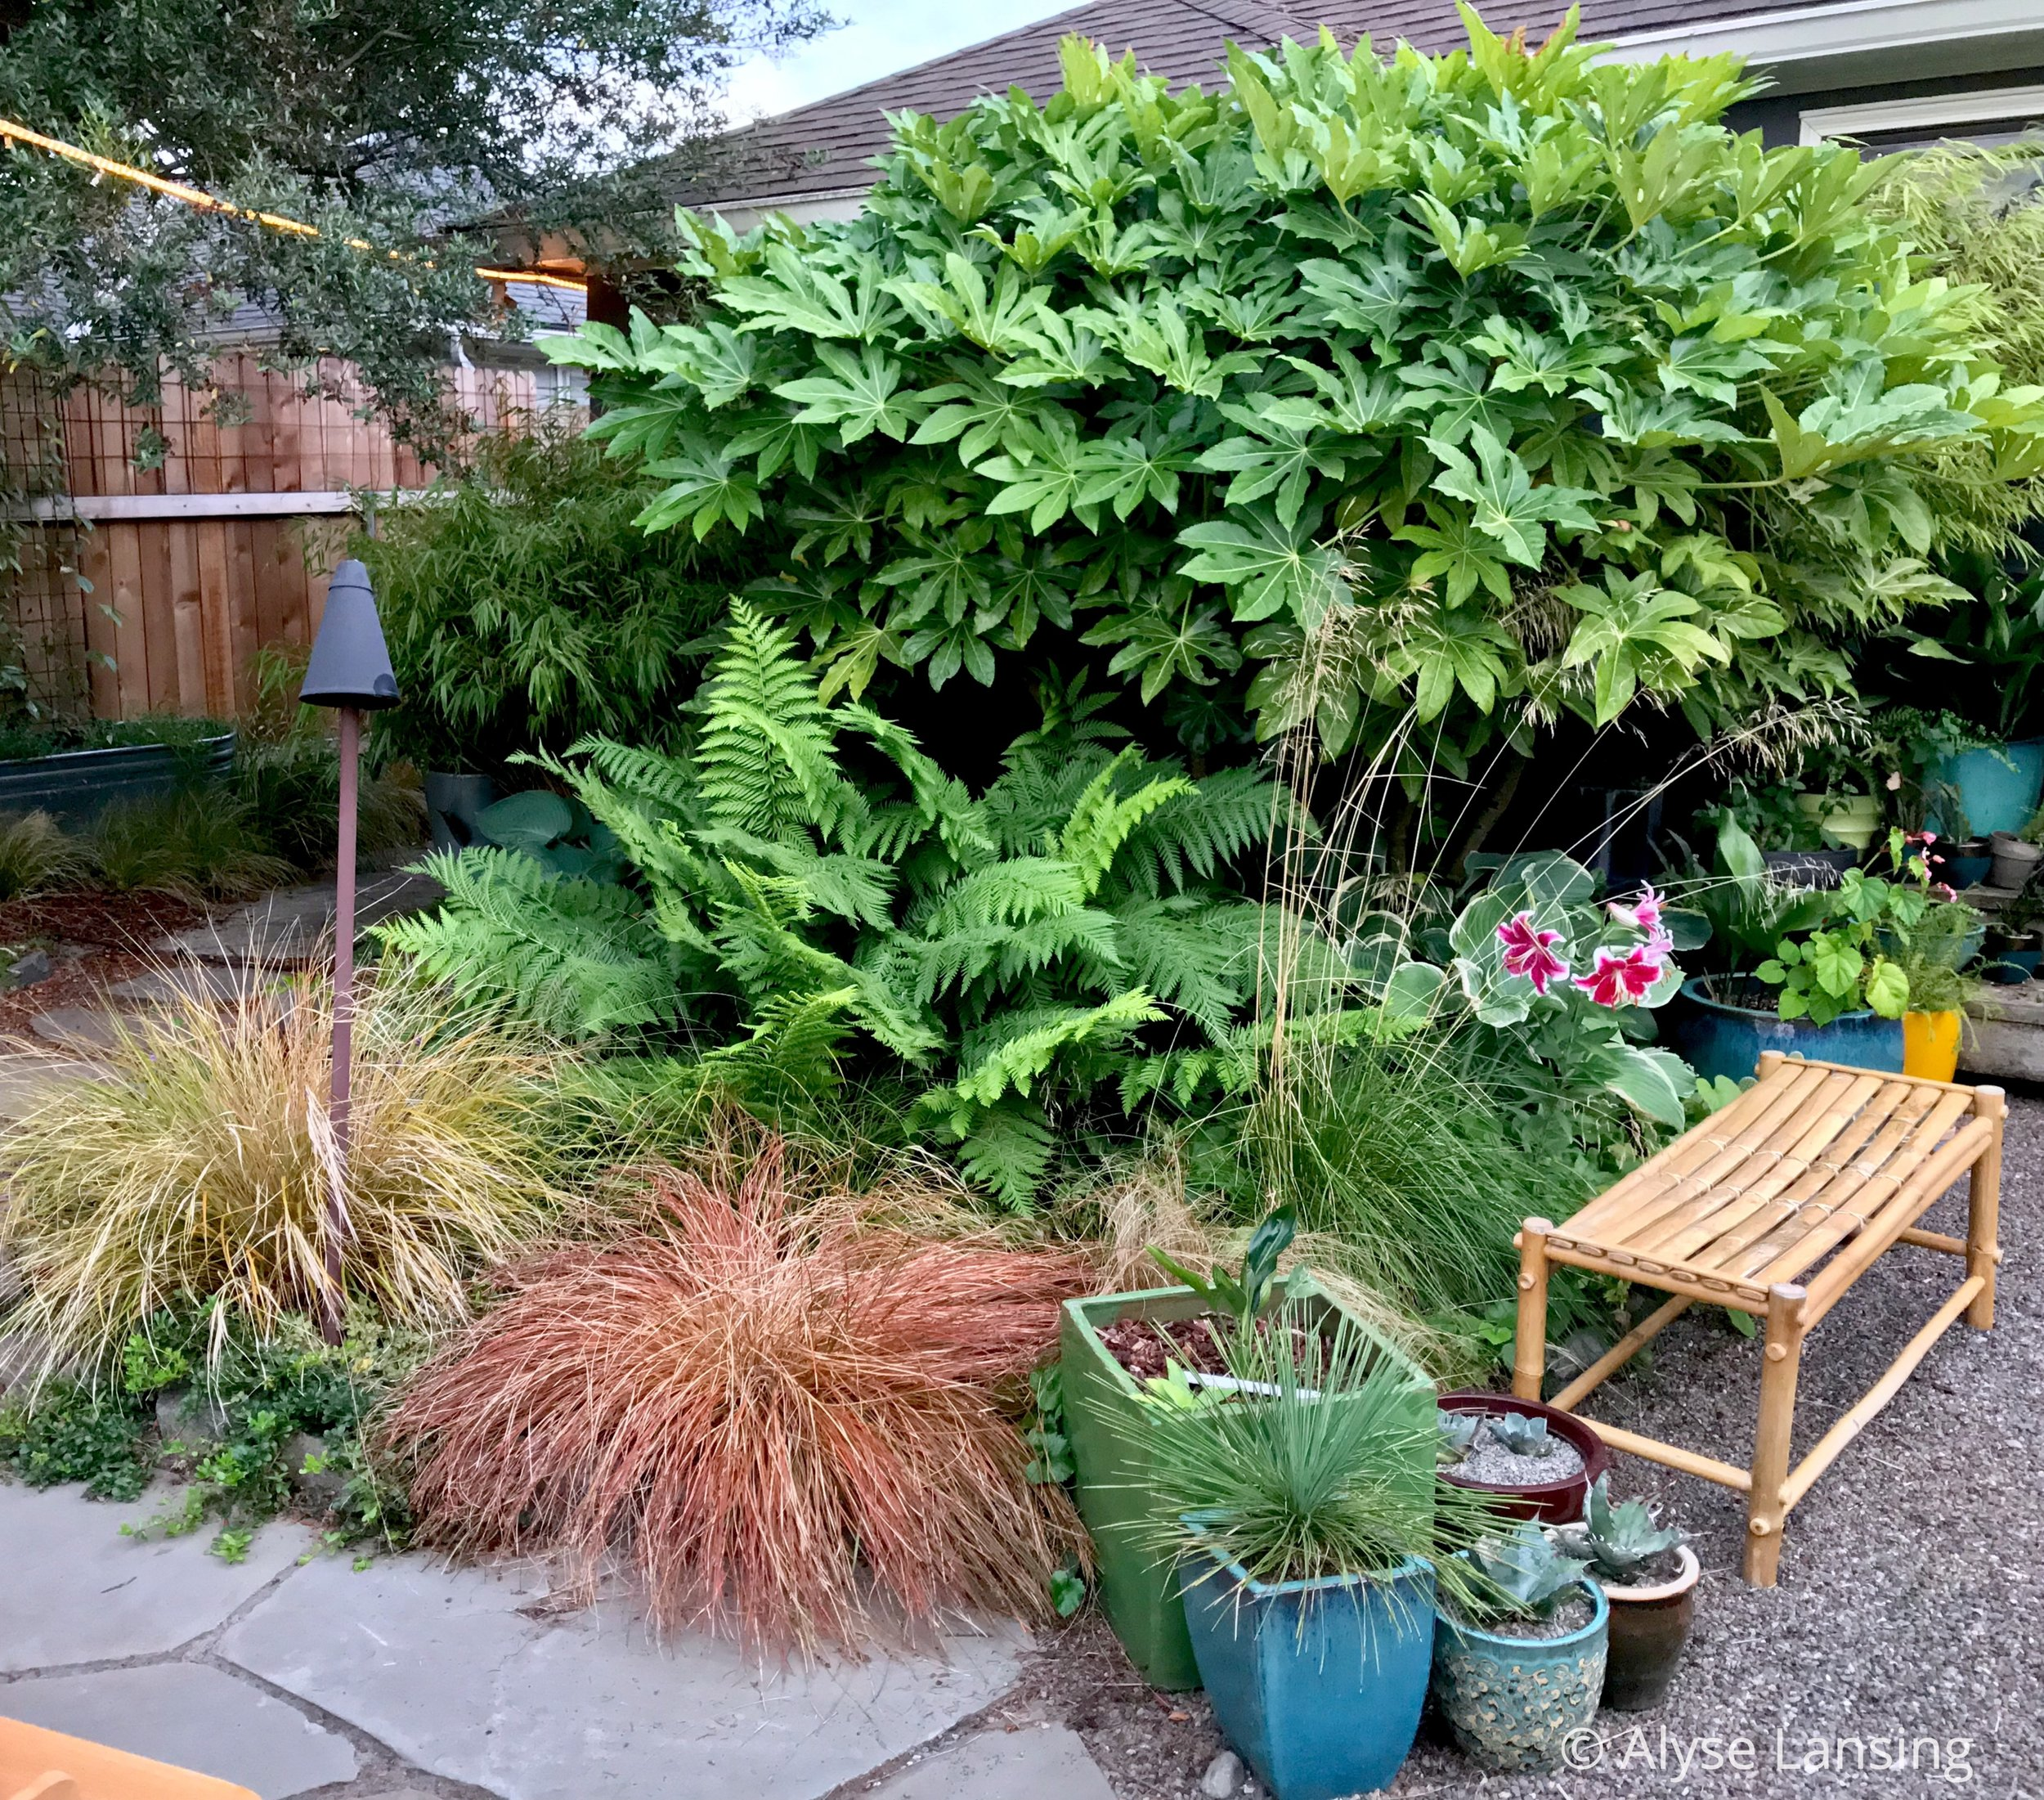 L to R:  Anemanthele lessoniana  (Pheasant's Tail Grass),  Carex  'Cappucchino' (New Zealand Hair Sedge),  Woodwardia fimbriata  (Giant Chain Fern), and  Fatsia japonica .